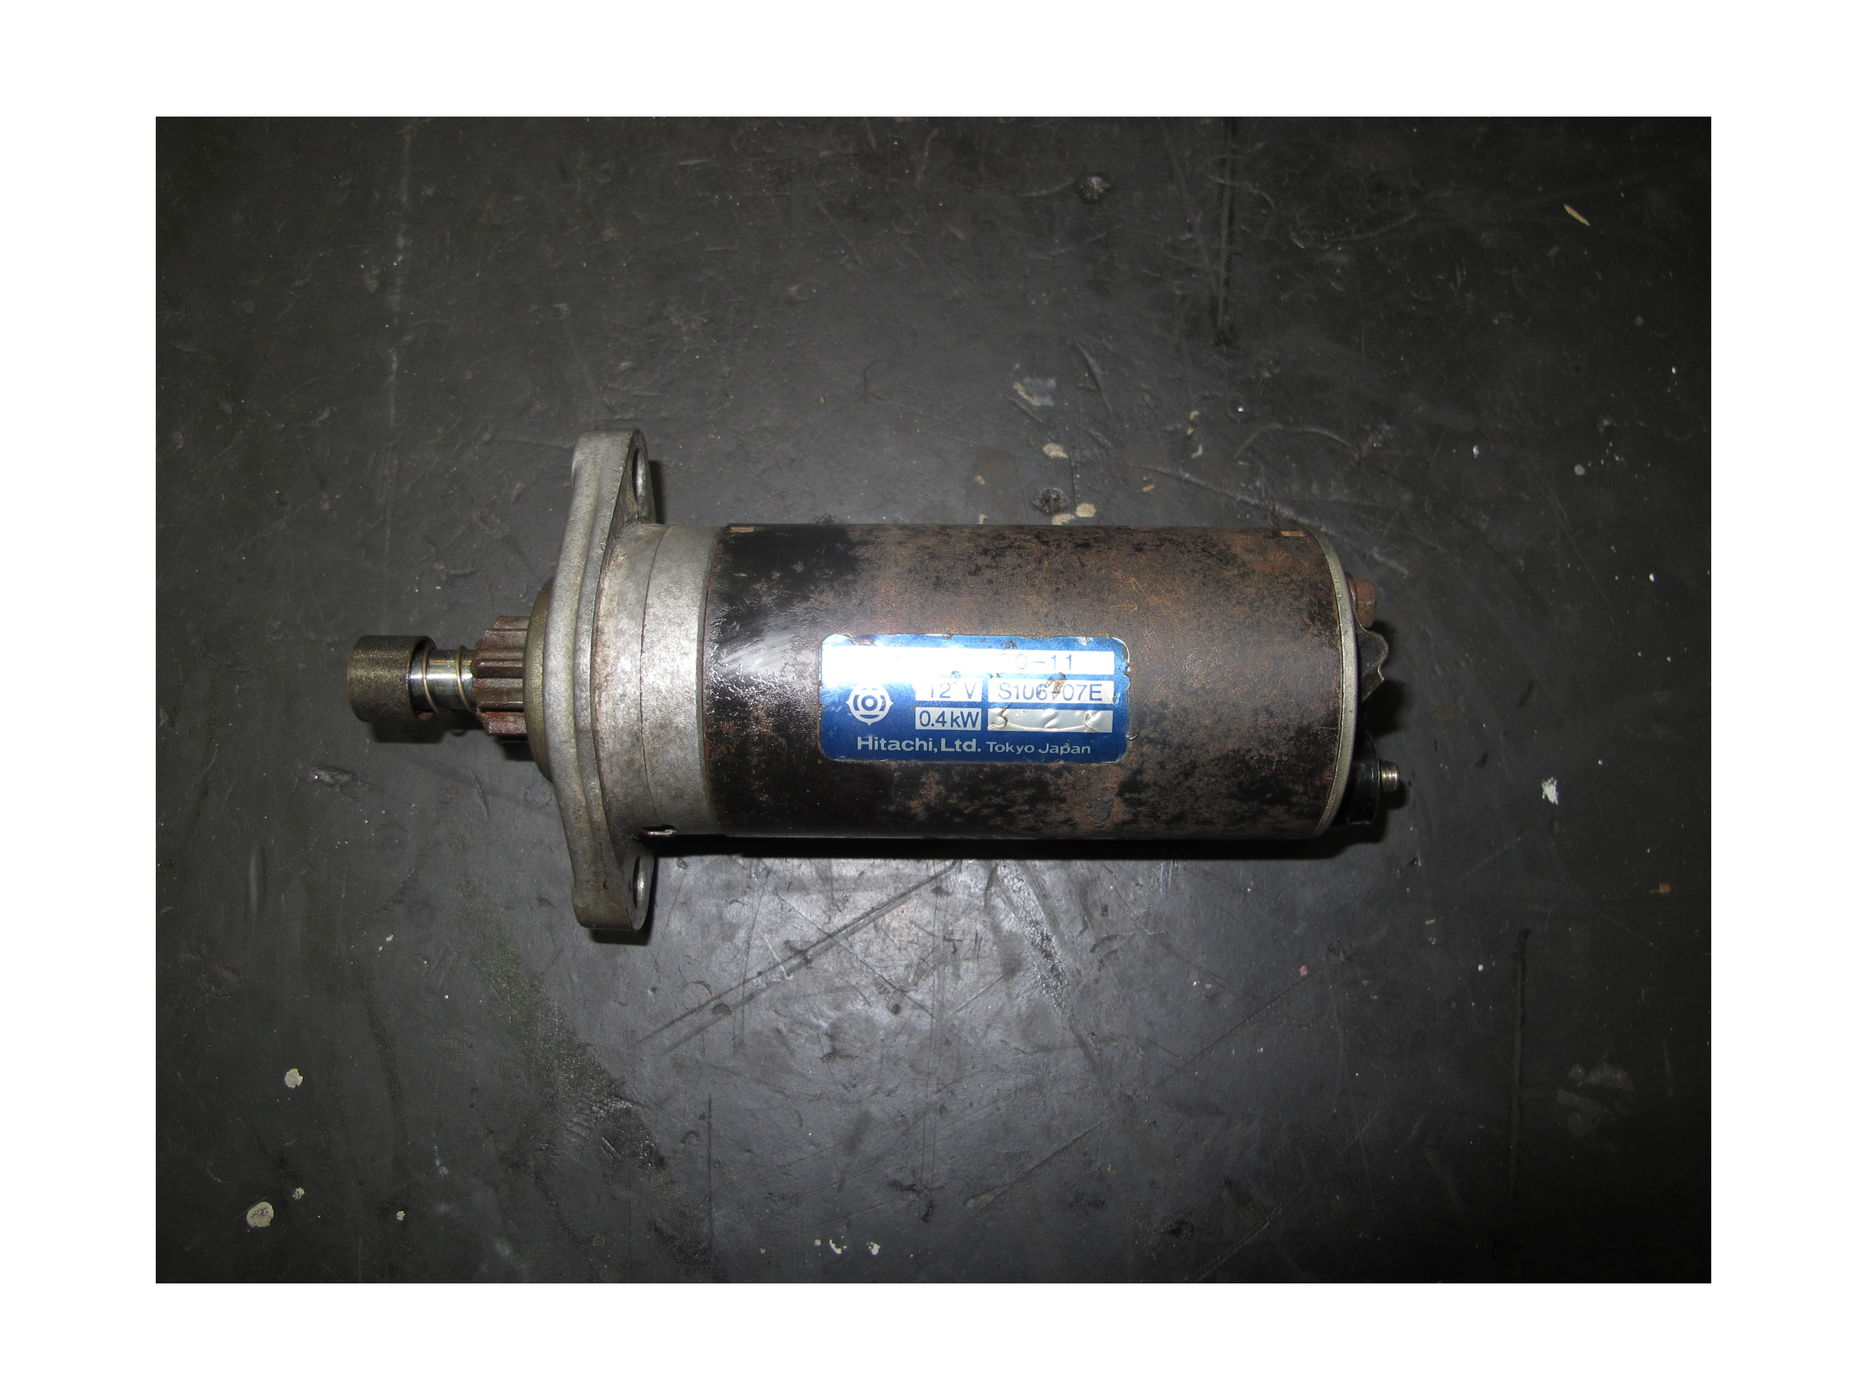 Стартер Yamaha 6C/8C/9.9F/15F/20D/25N, S106-07E (6L2-81800-20) , б/у 6L2818001100 usedДругие<br><br>